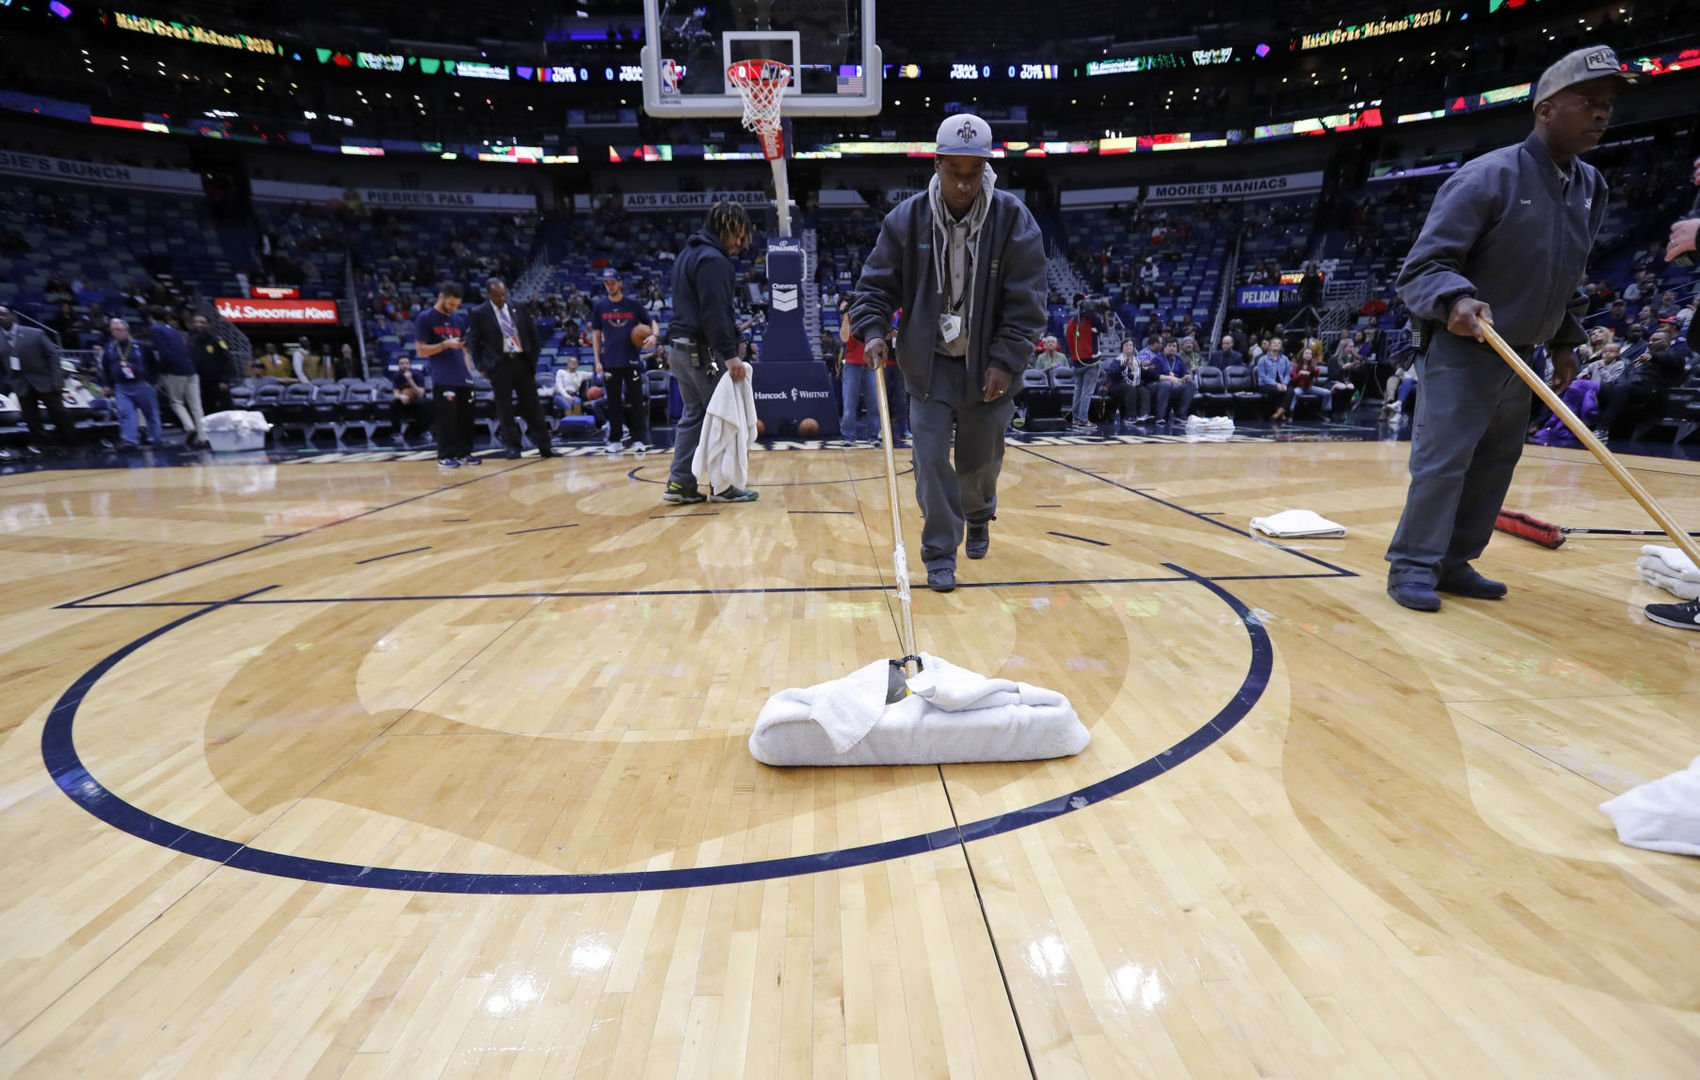 Roof leak delays game at Smoothie Kings Center / The New Orleans Advocate